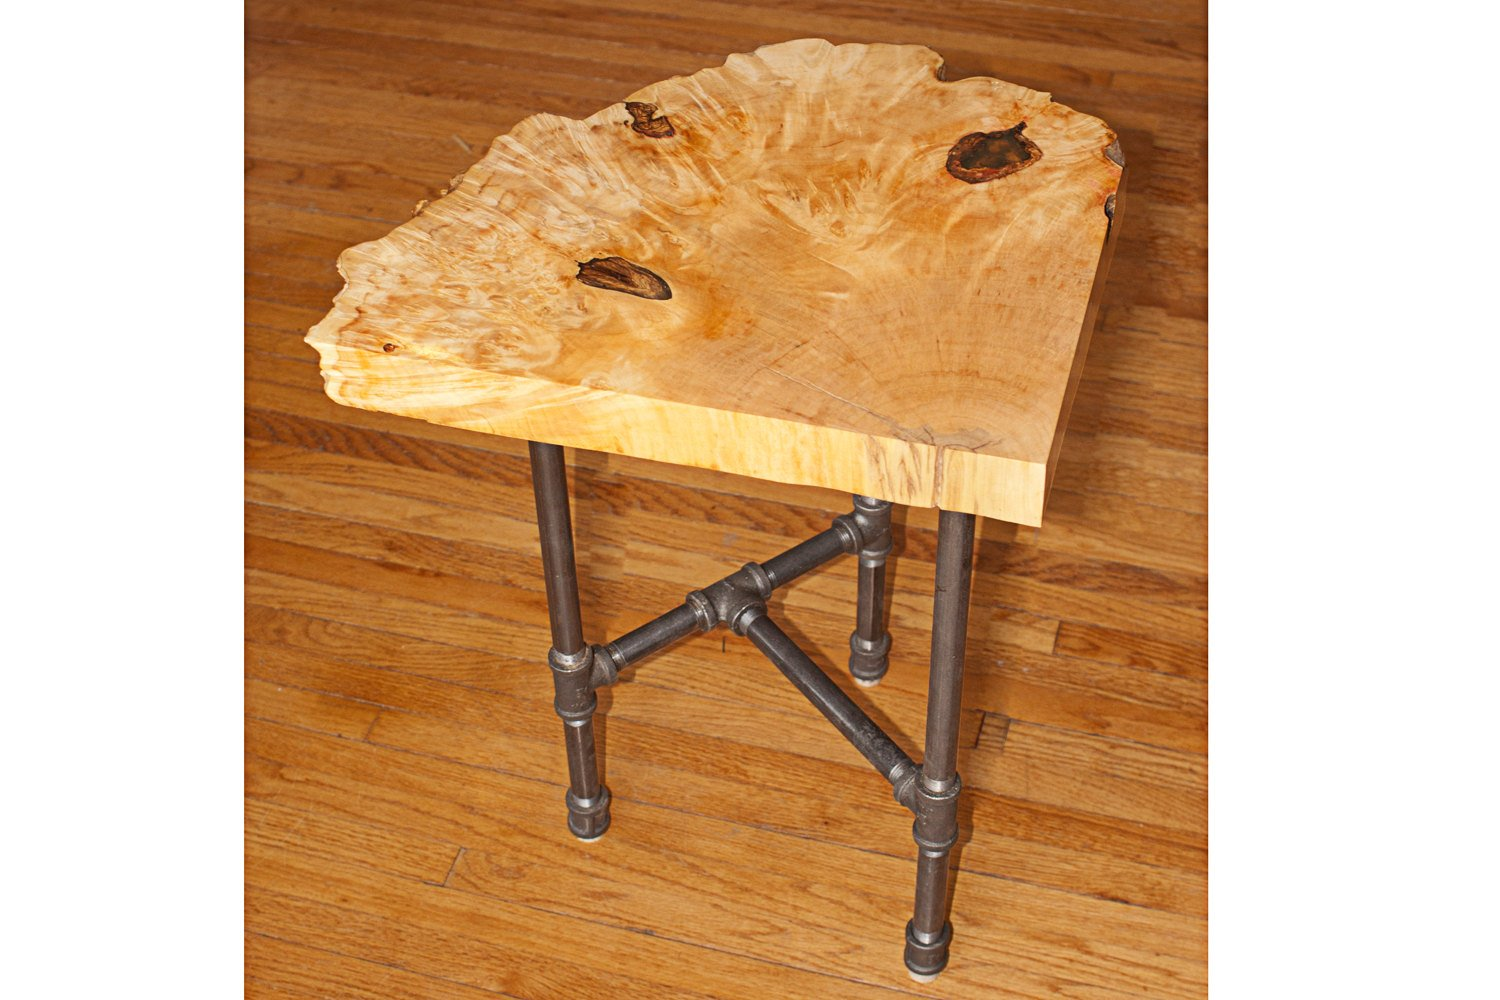 live edge coffee table natural maple burl corner etsy fullxfull wood accent antique round target wicker chairs mosaic outdoor floor lamps toronto aluminum patio and glass sets